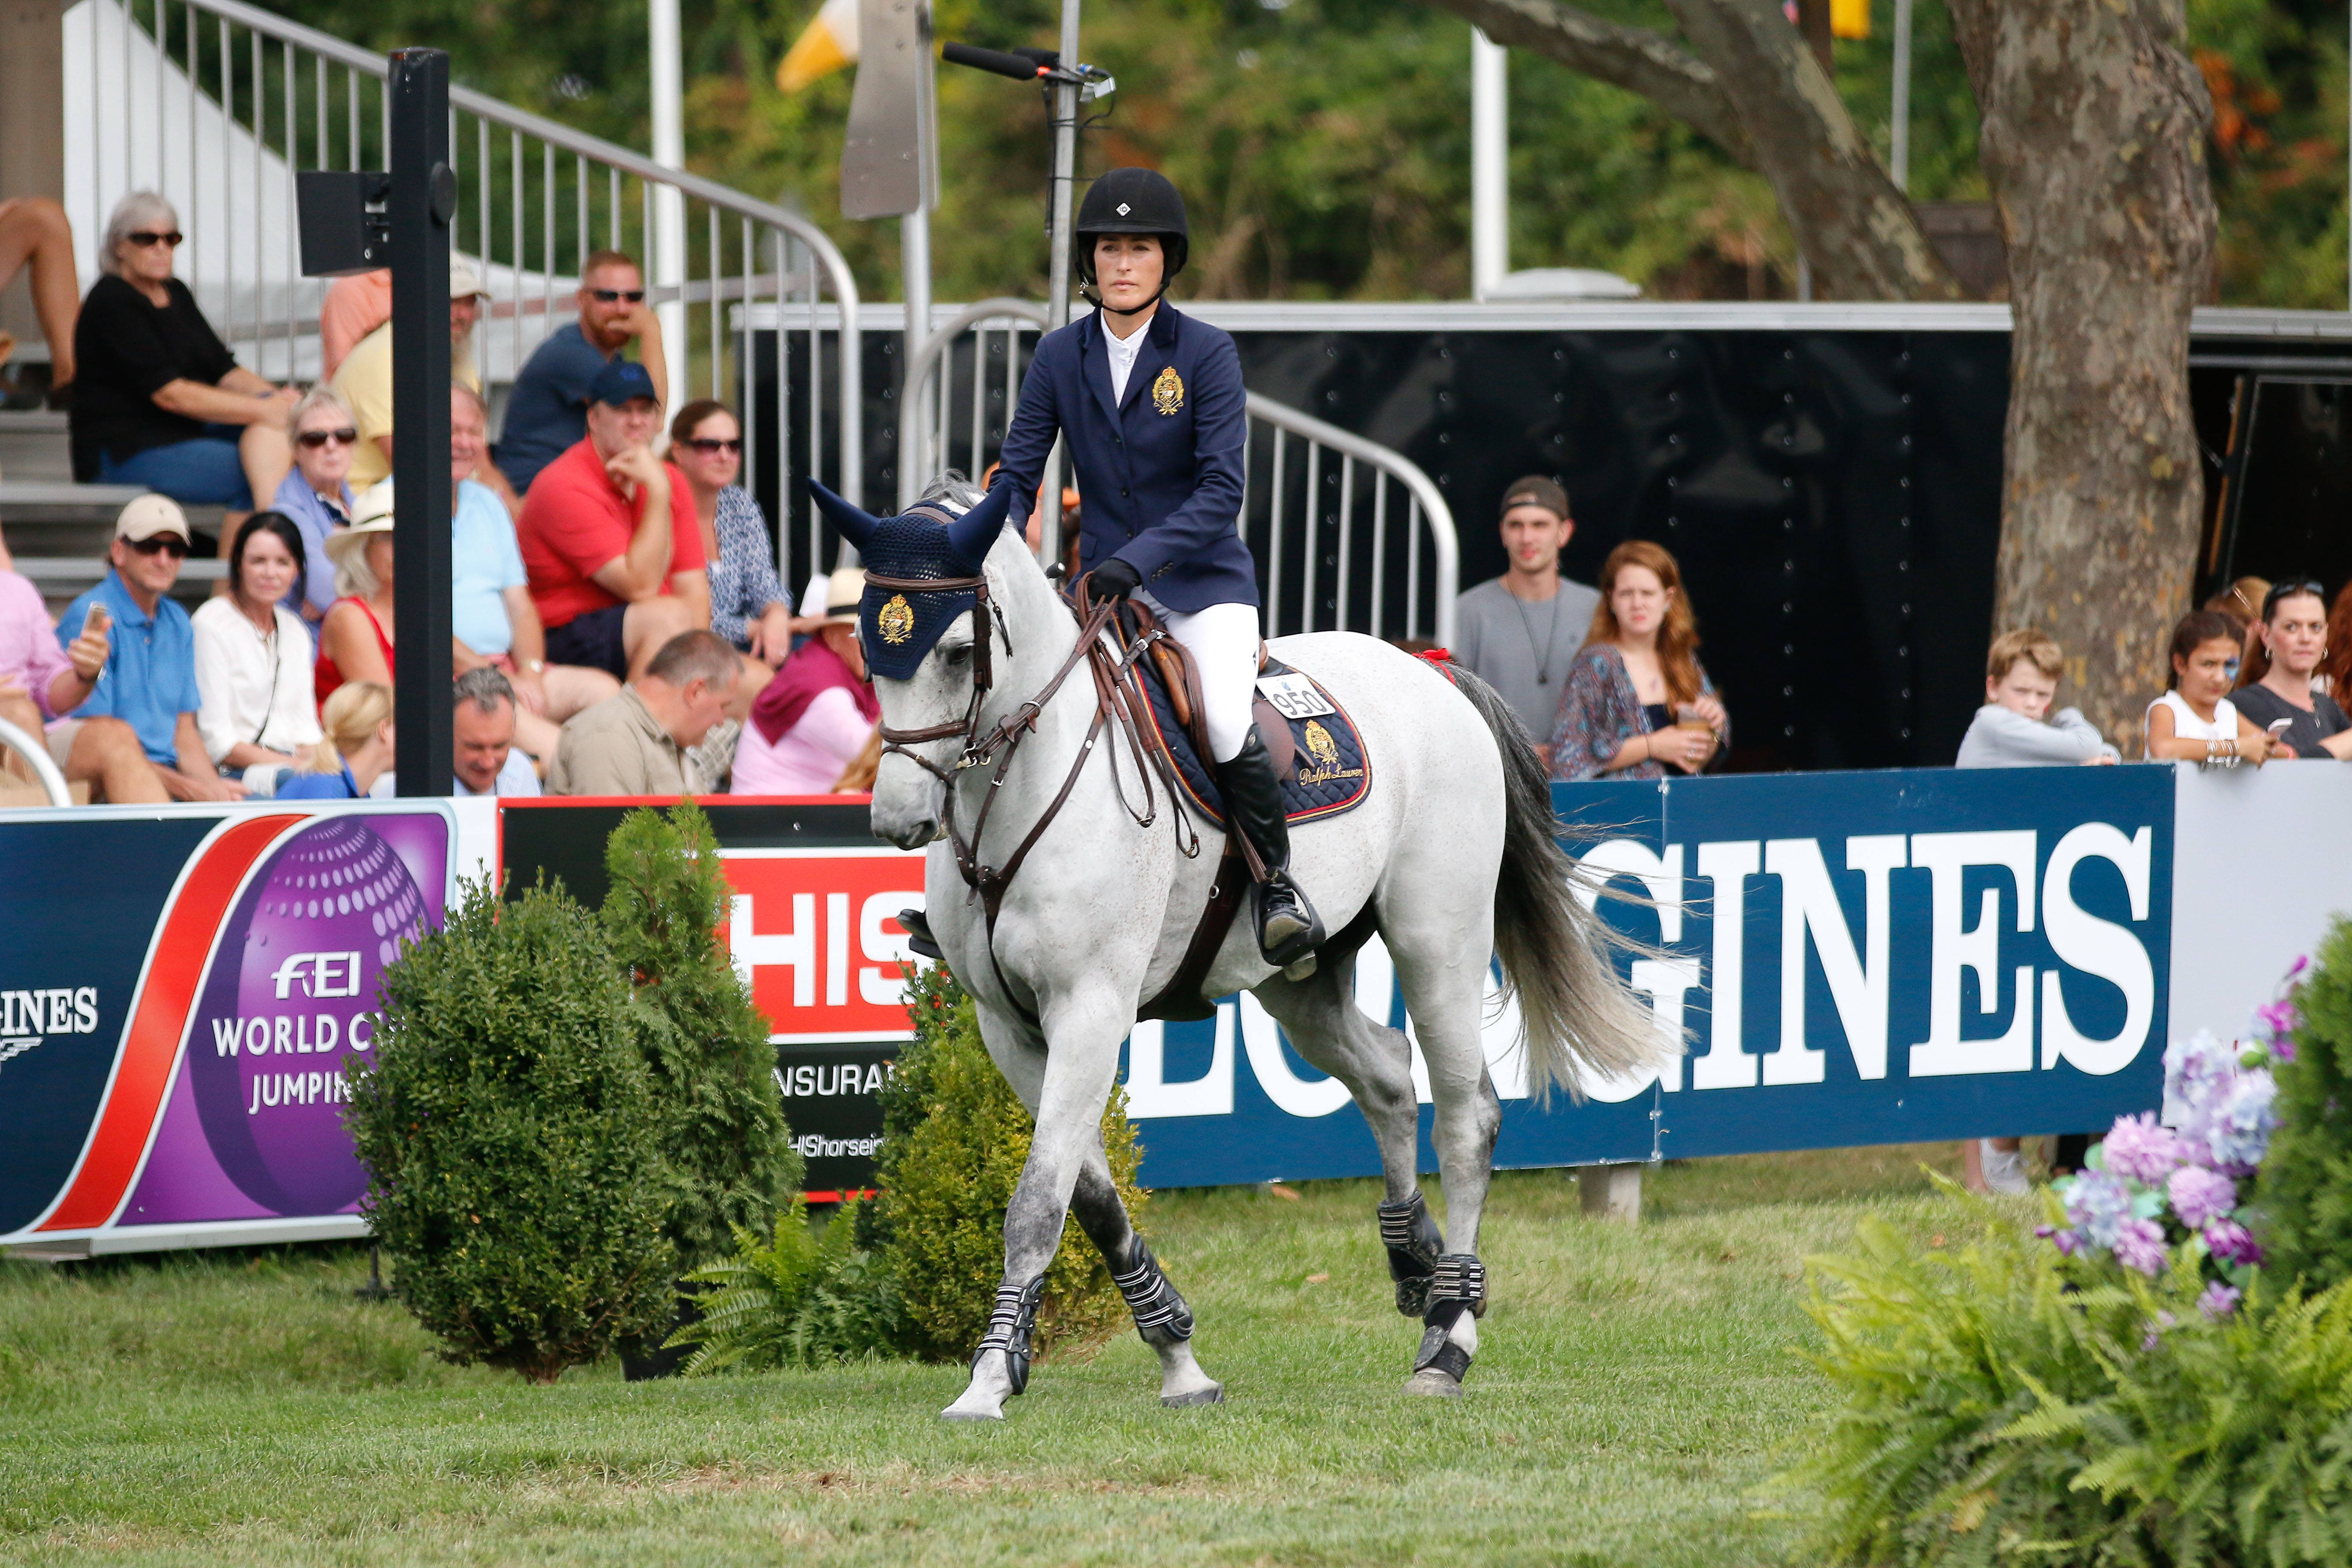 225aa5e74c0dc722dce8_NSgoldcup-160918-599.jpg